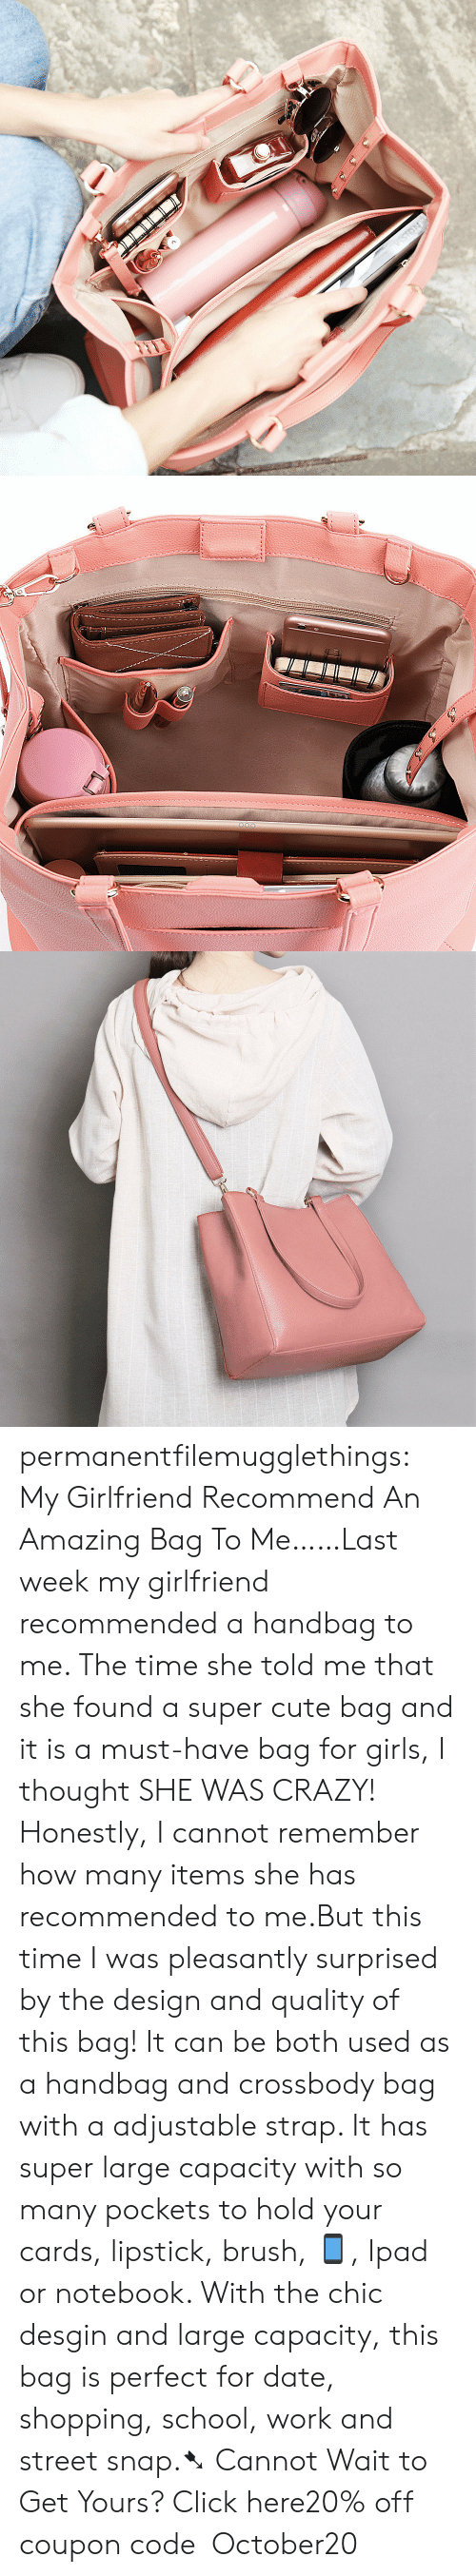 handbag: permanentfilemugglethings:  My Girlfriend Recommend An Amazing Bag To Me……Last week my girlfriend recommended a handbag to me. The time she told me that she found a super cute bag and it is a must-have bag for girls, I thought SHE WAS CRAZY! Honestly, I cannot remember how many items she has recommended to me.But this time I was pleasantly surprised by the design and quality of this bag! It can be both used as a handbag and crossbody bag with a adjustable strap. It has super large capacity with so many pockets to hold your cards, lipstick, brush, 📱, Ipad or notebook. With the chic desgin and large capacity, this bag is perfect for date, shopping, school, work and street snap.➷ Cannot Wait to Get Yours? Click here20% off coupon code:October20